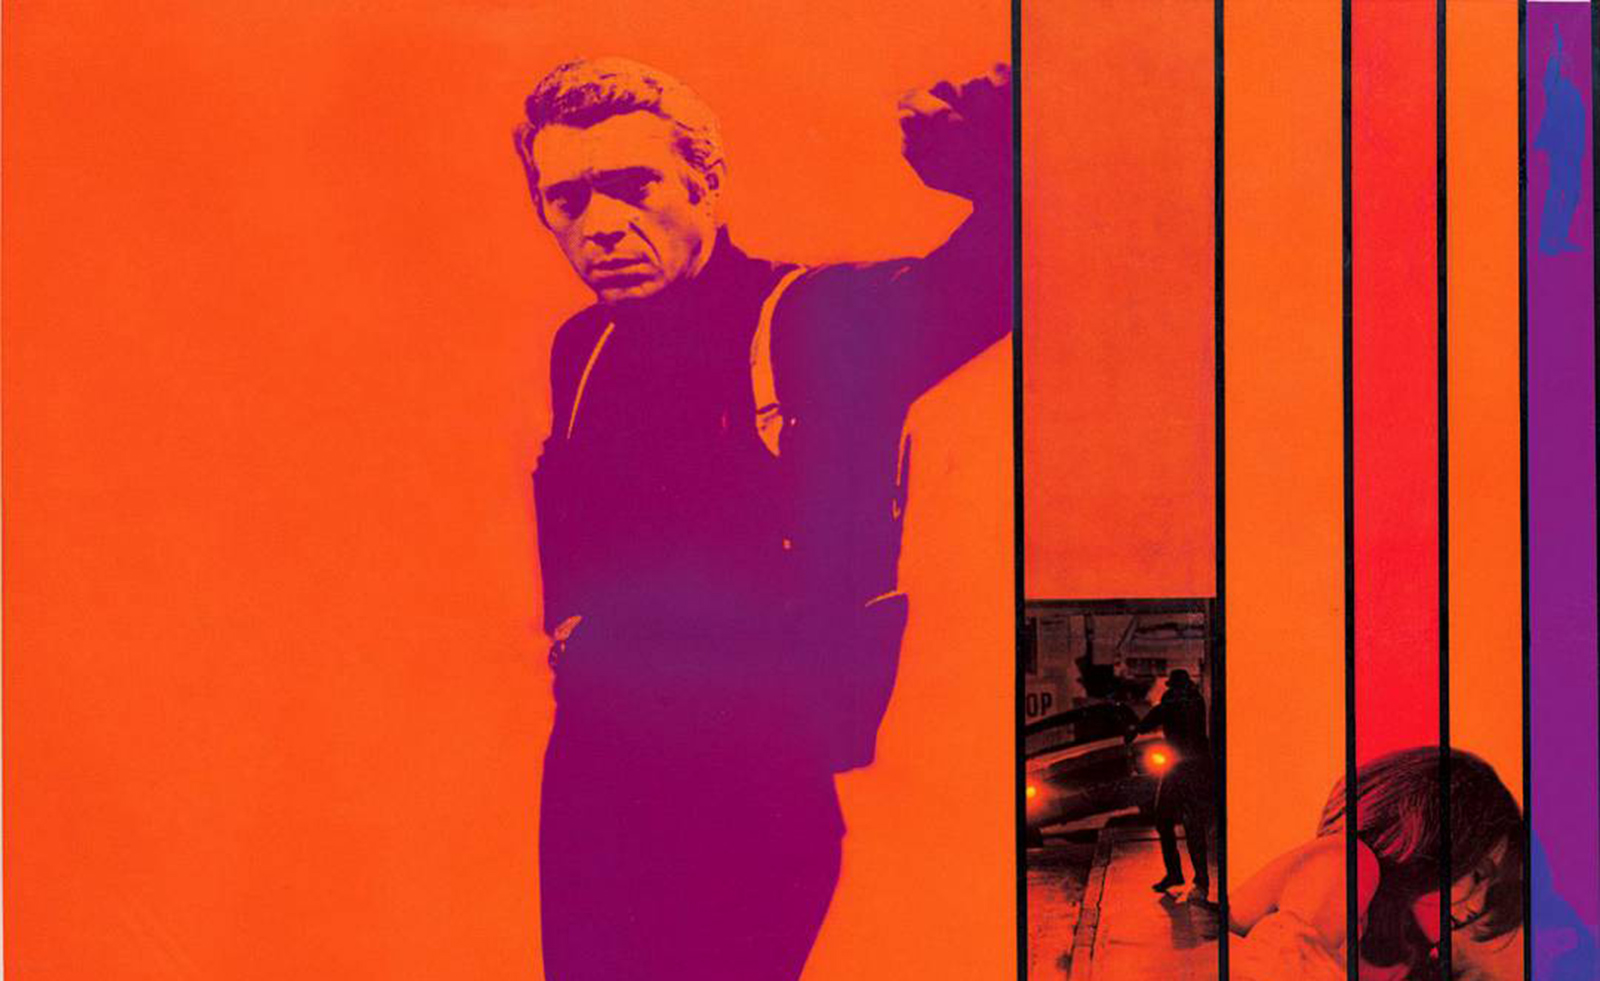 Celebrating the graphic design of Bill Gold's film posters ...